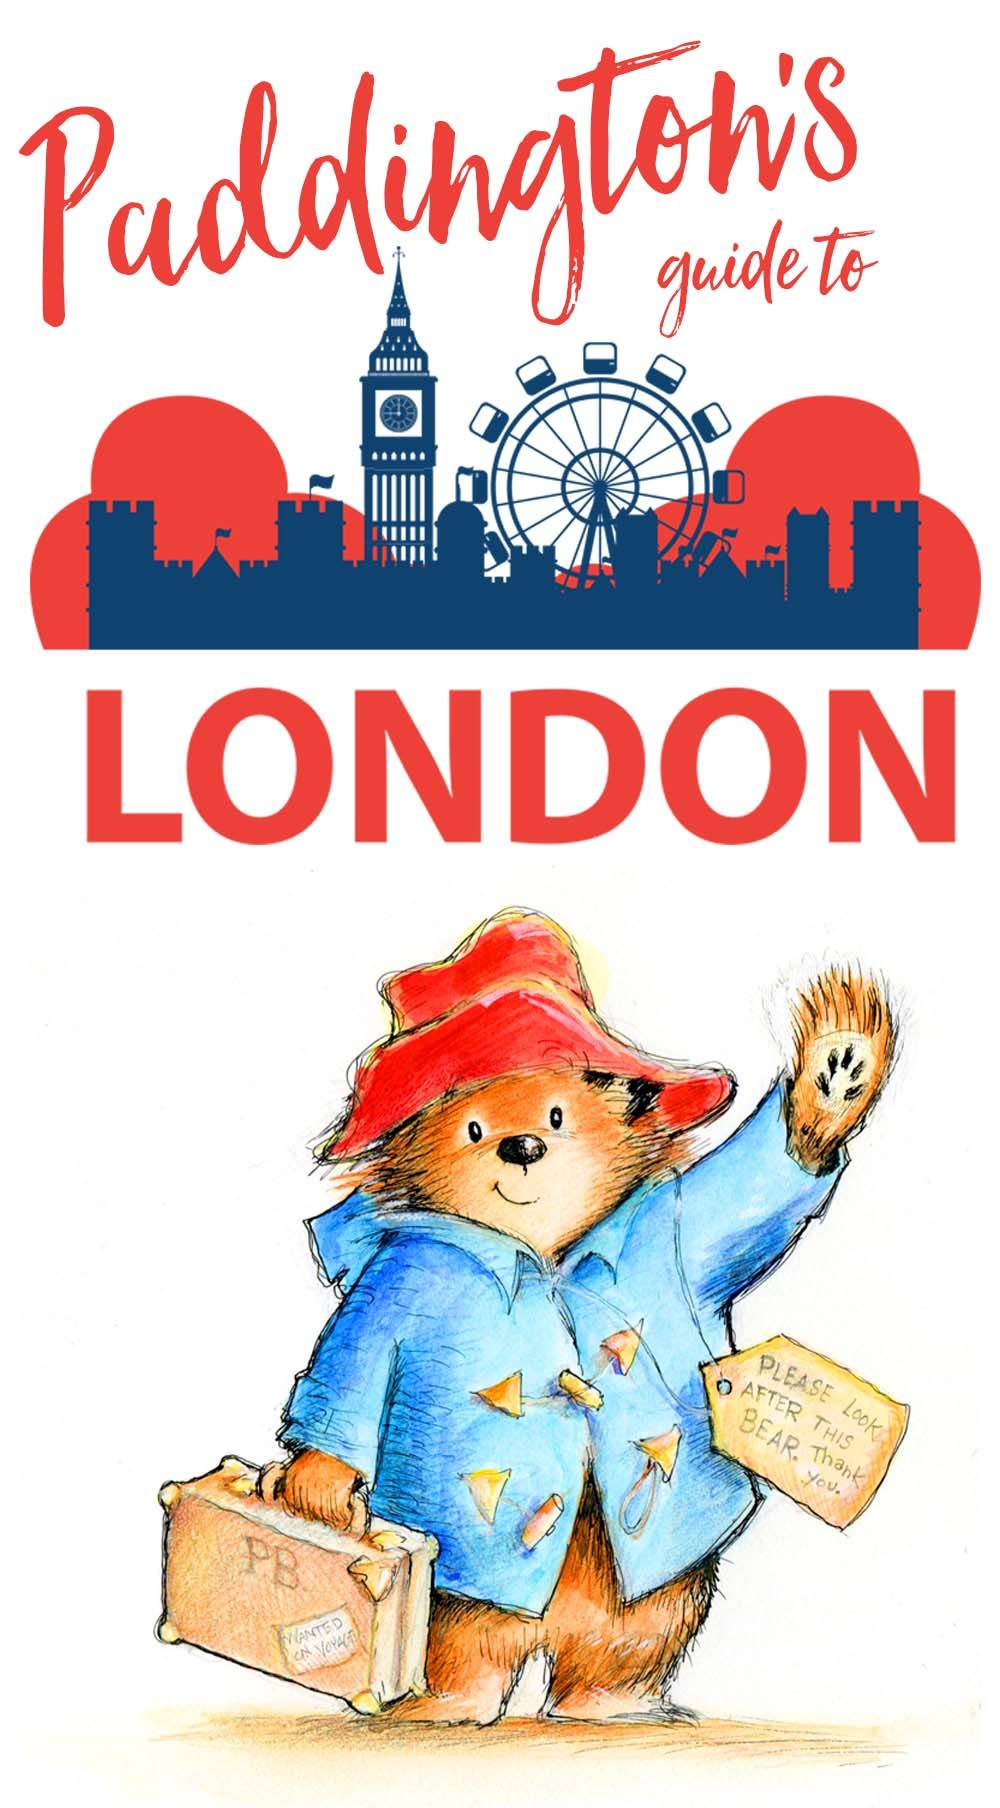 Follow Paddington Bear from deepest, darkest Peru all the way to the busy streets of London to find his favorite spots in this Paddington's Guide to London.